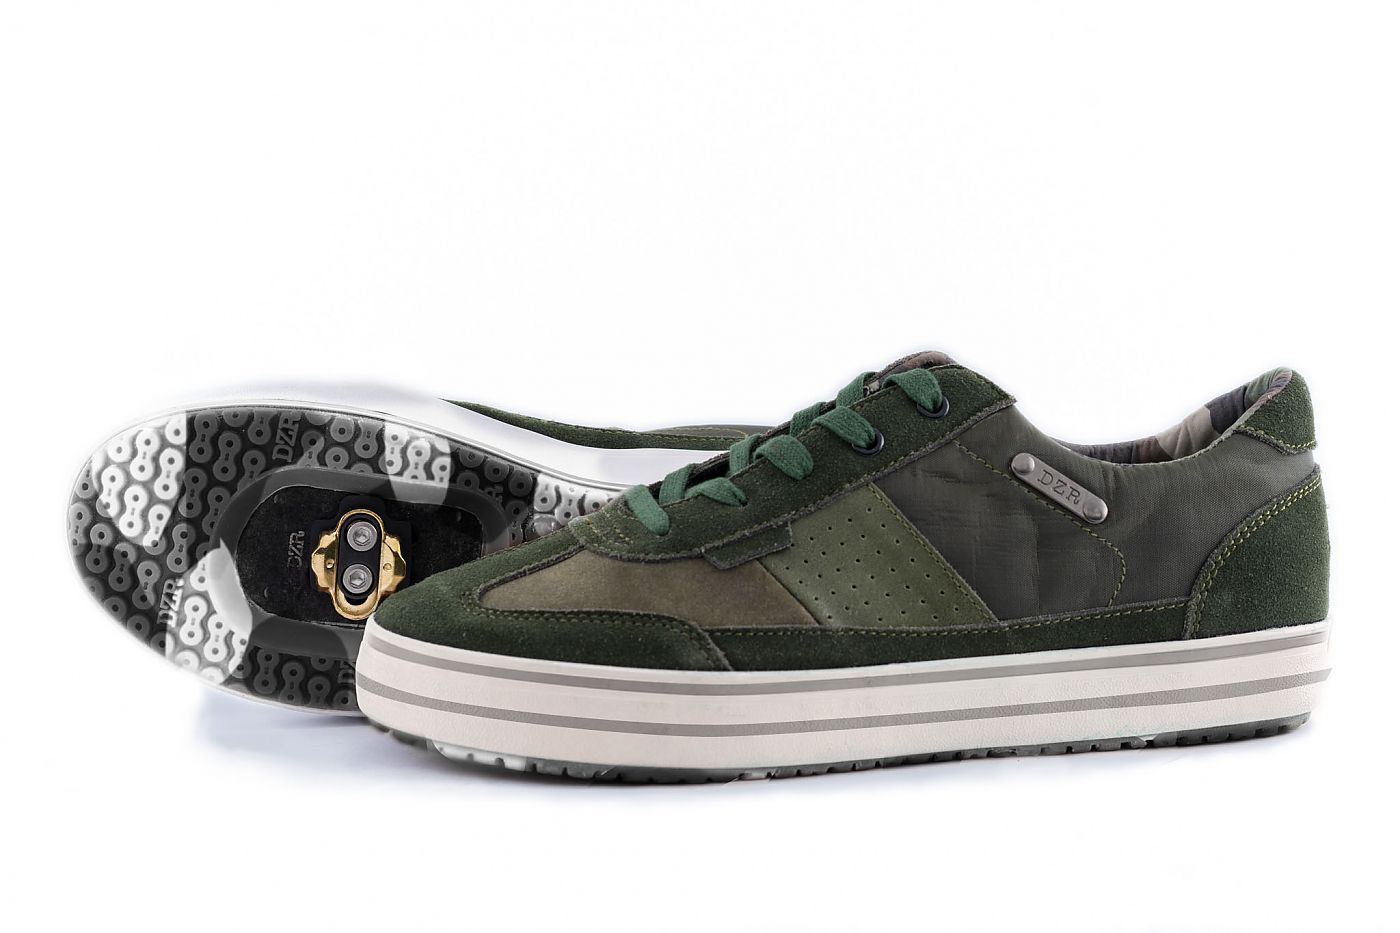 san francisco be831 86896 DZR Shoes releases two limited edition shoes   Bicycle Retailer and ...